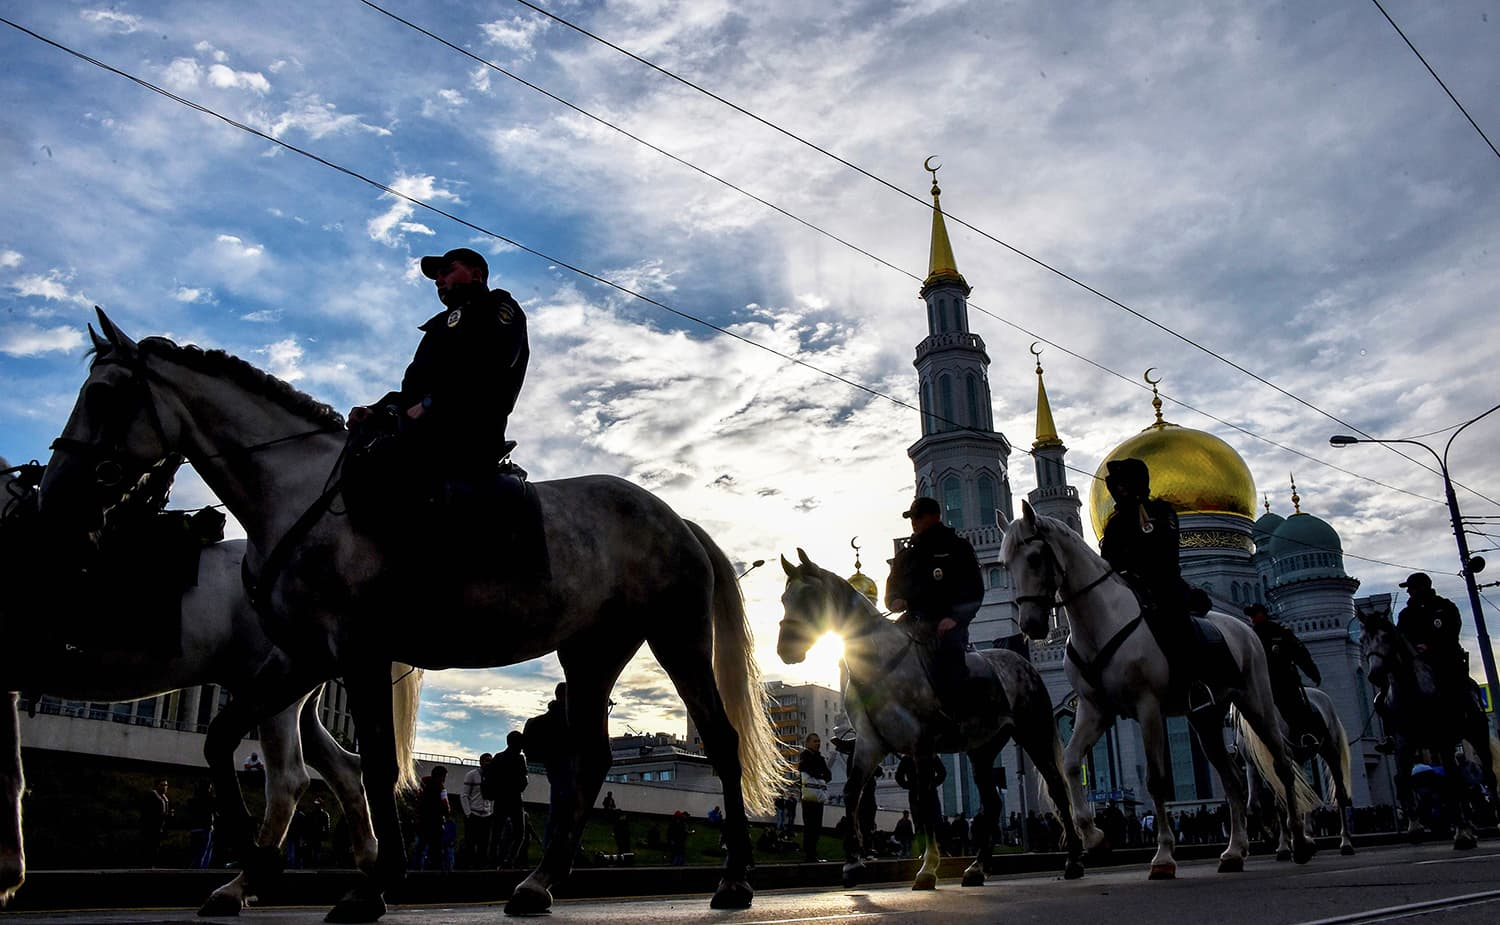 Russian mounted police patrol near the central Mosque in Moscow during the celebrations of Eidul Fitr. — AFP